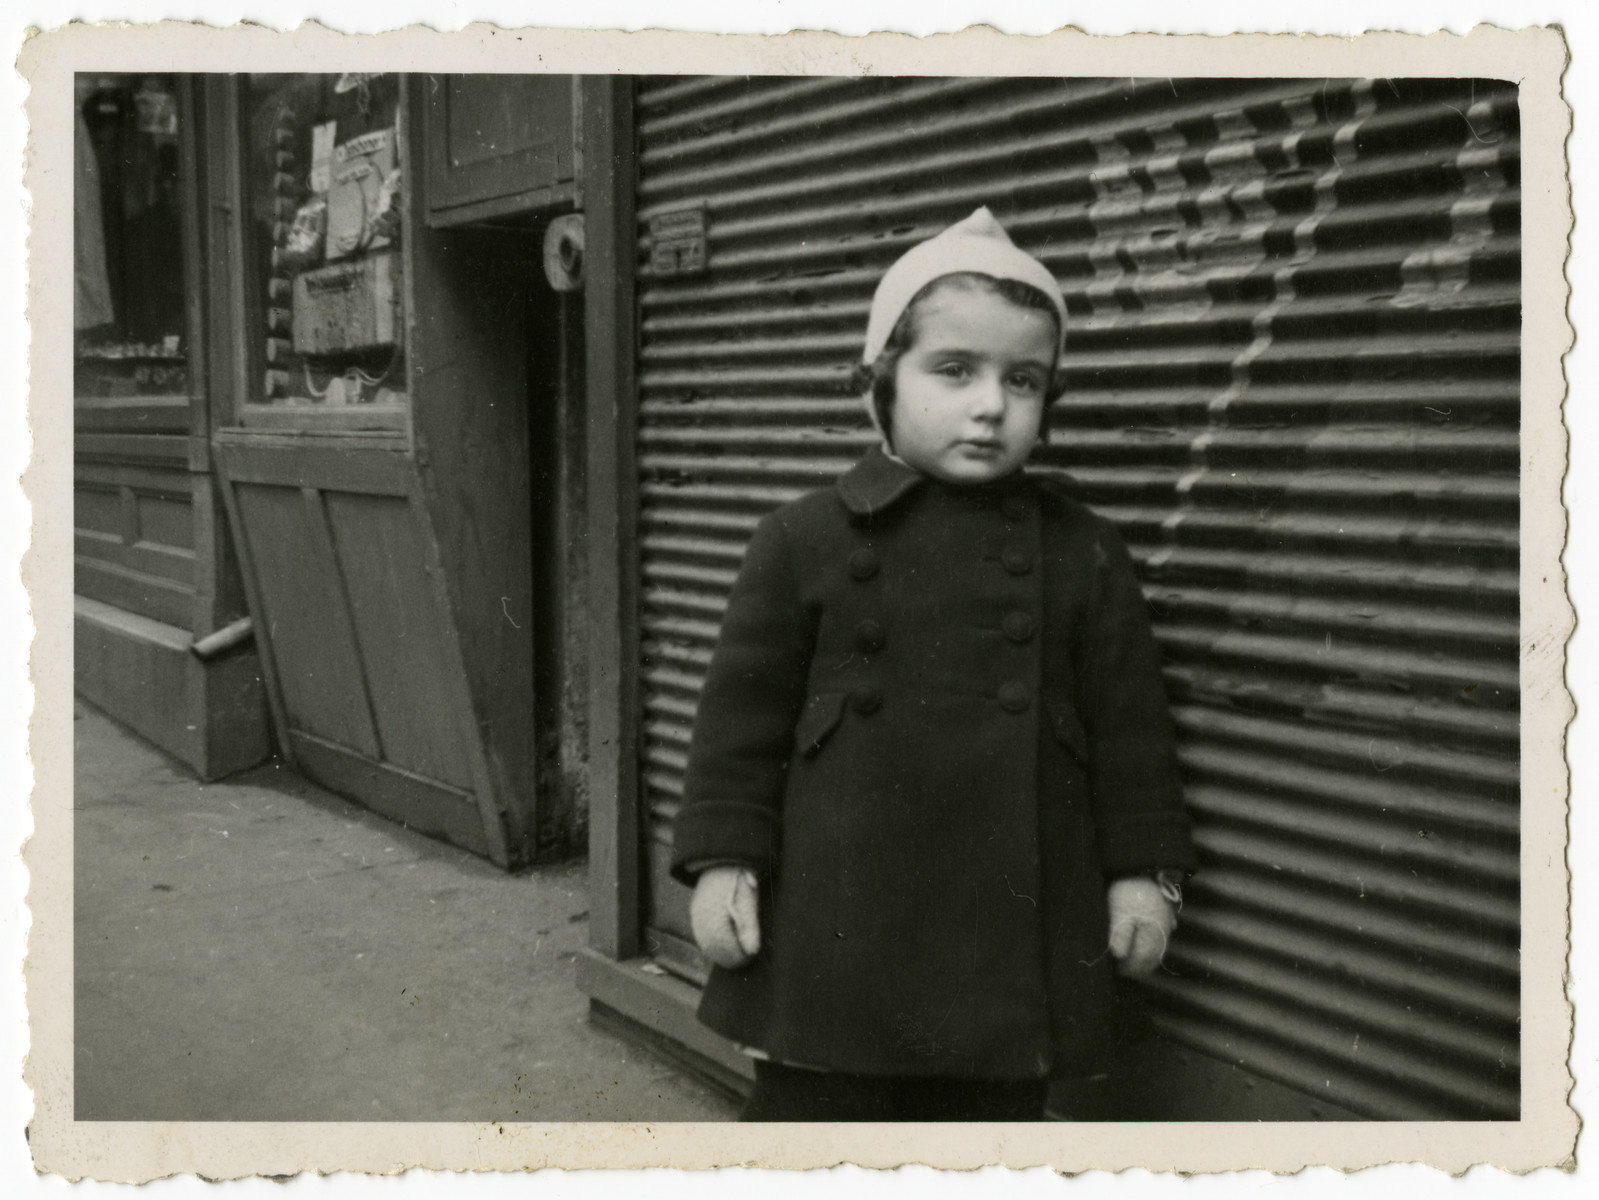 Edith Ostern stands in front of a boarded up building in Vienna.